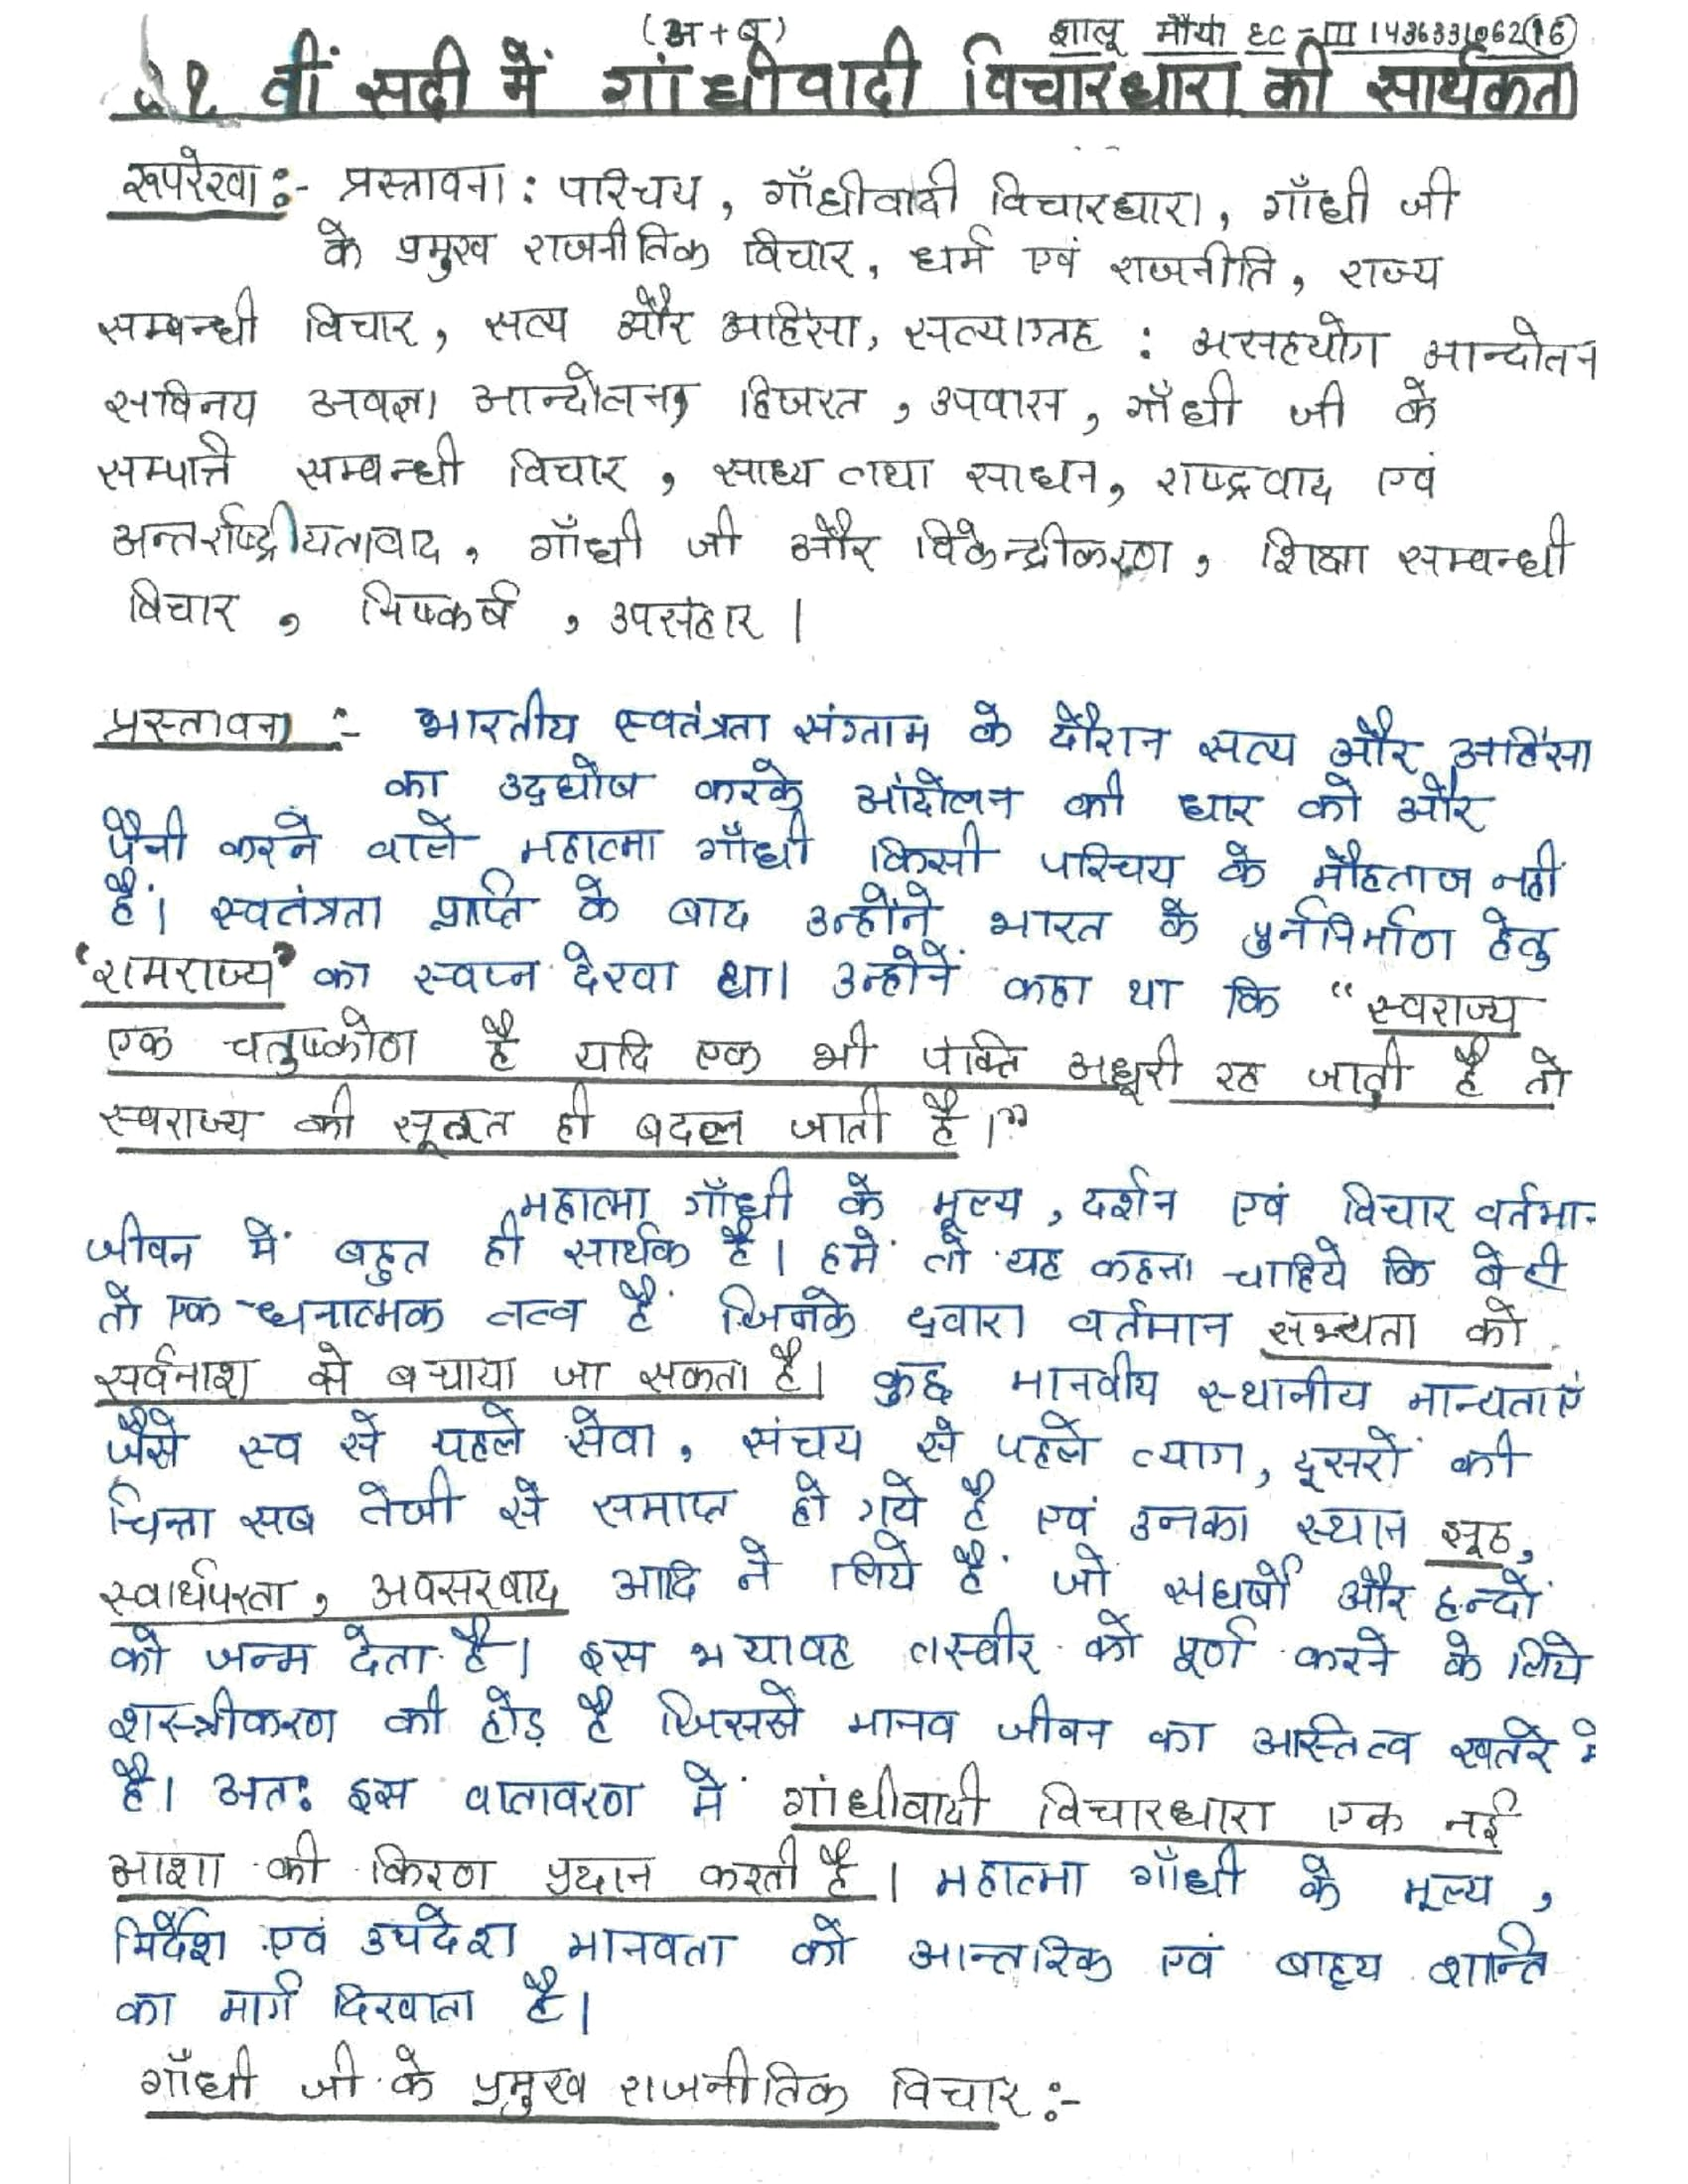 brain drain essay in hindi